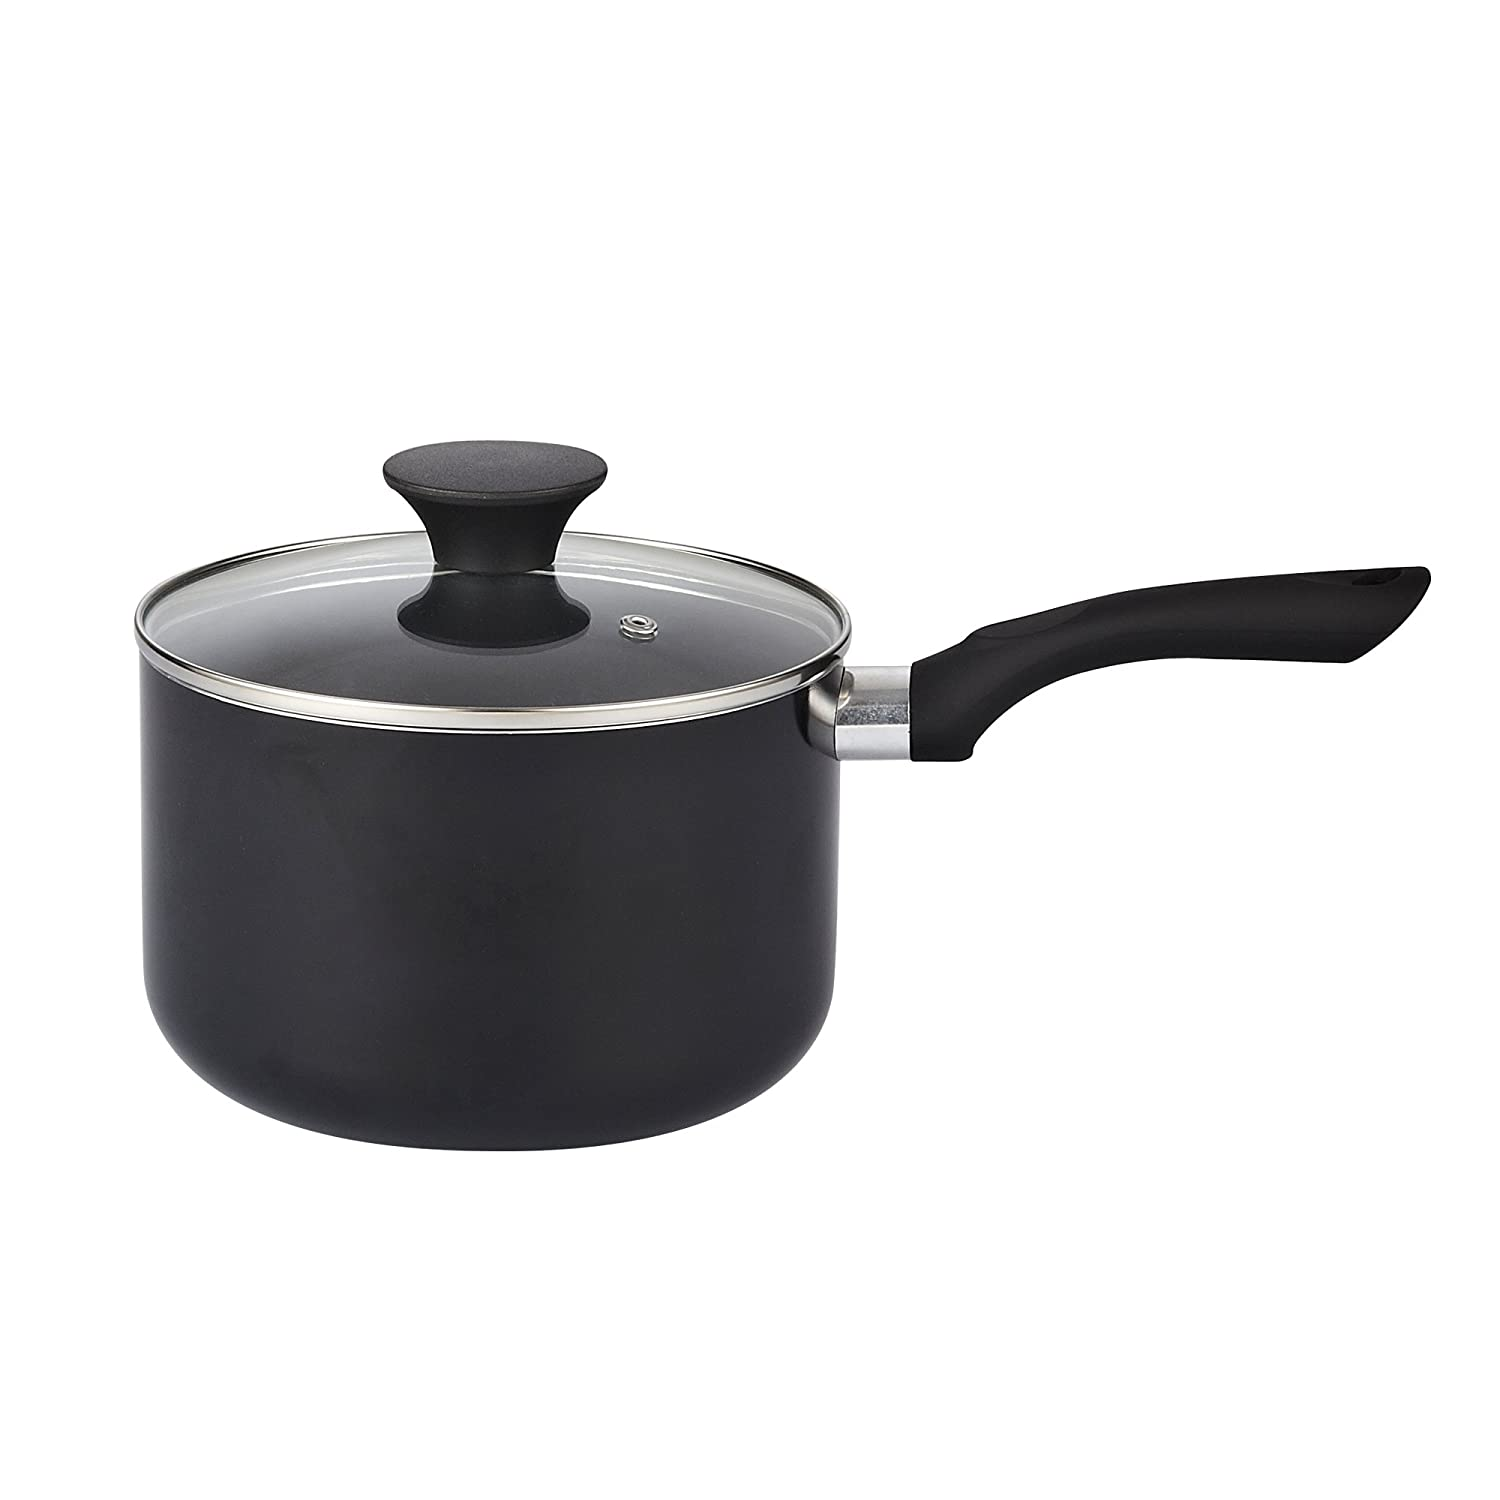 Cook N Home Nonstick Sauce Pan with Lid Black 02419 3 quart